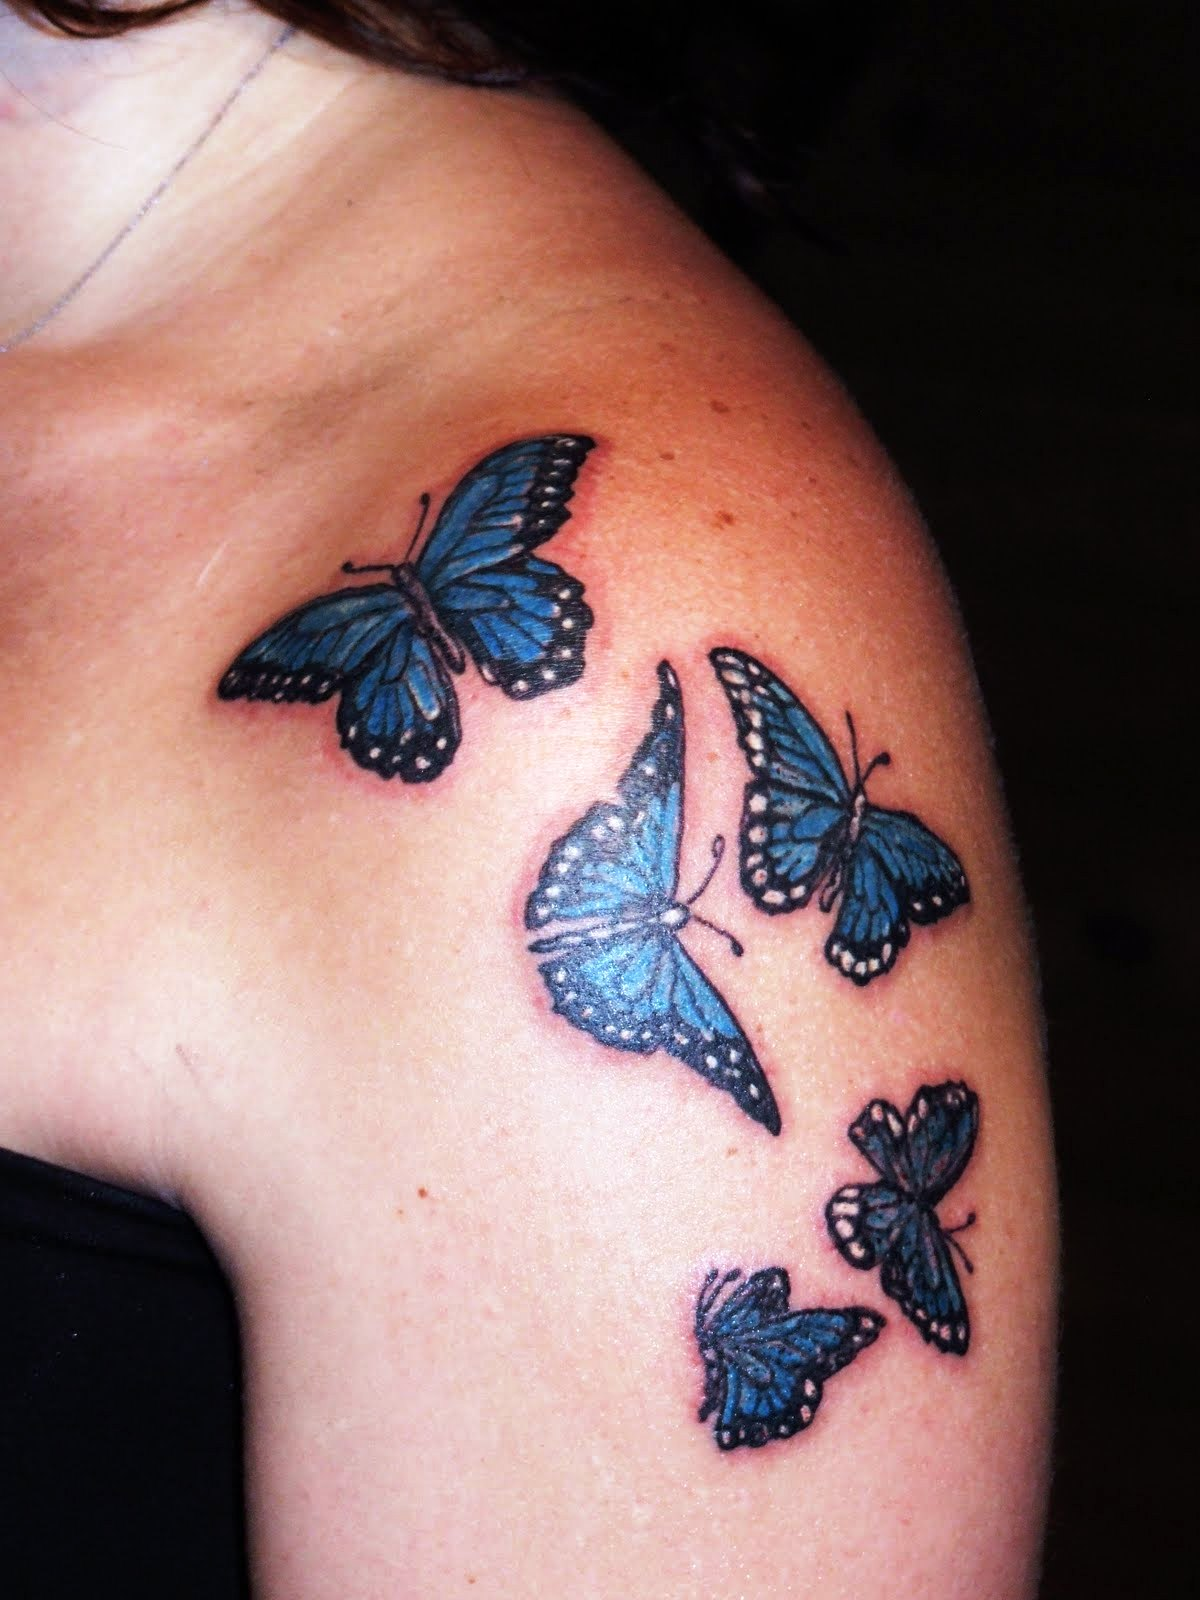 4-butterfly tattoo ideas